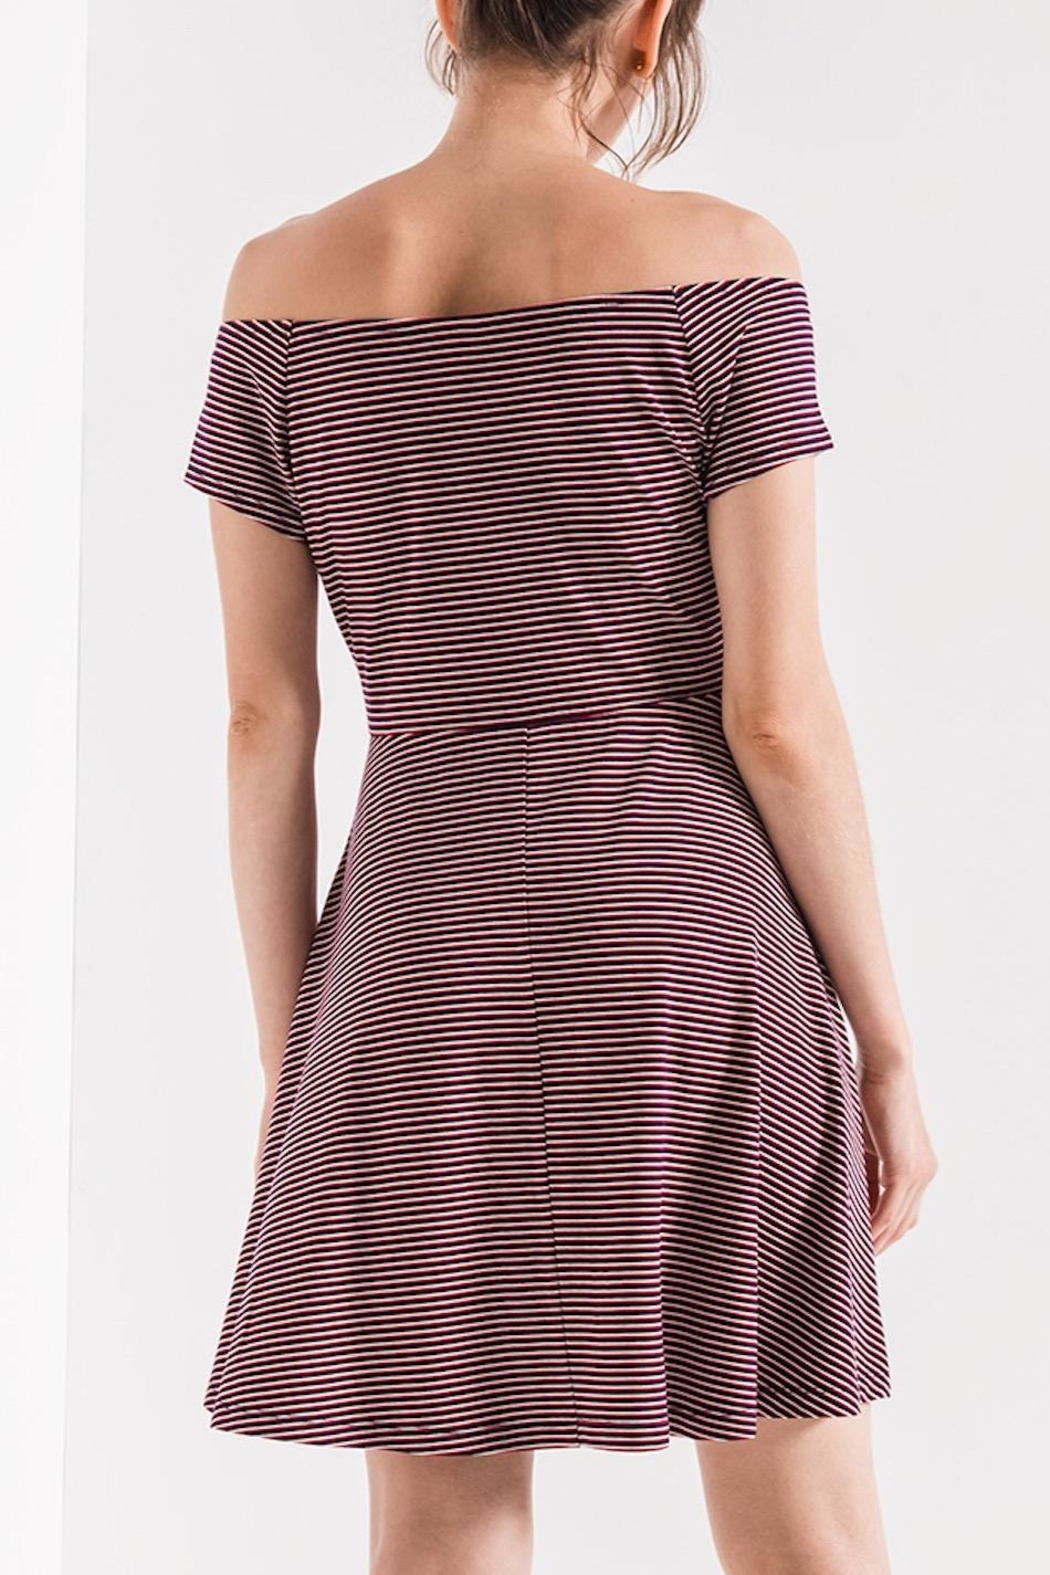 Others Follow  Striped Skater Dress - Front Full Image